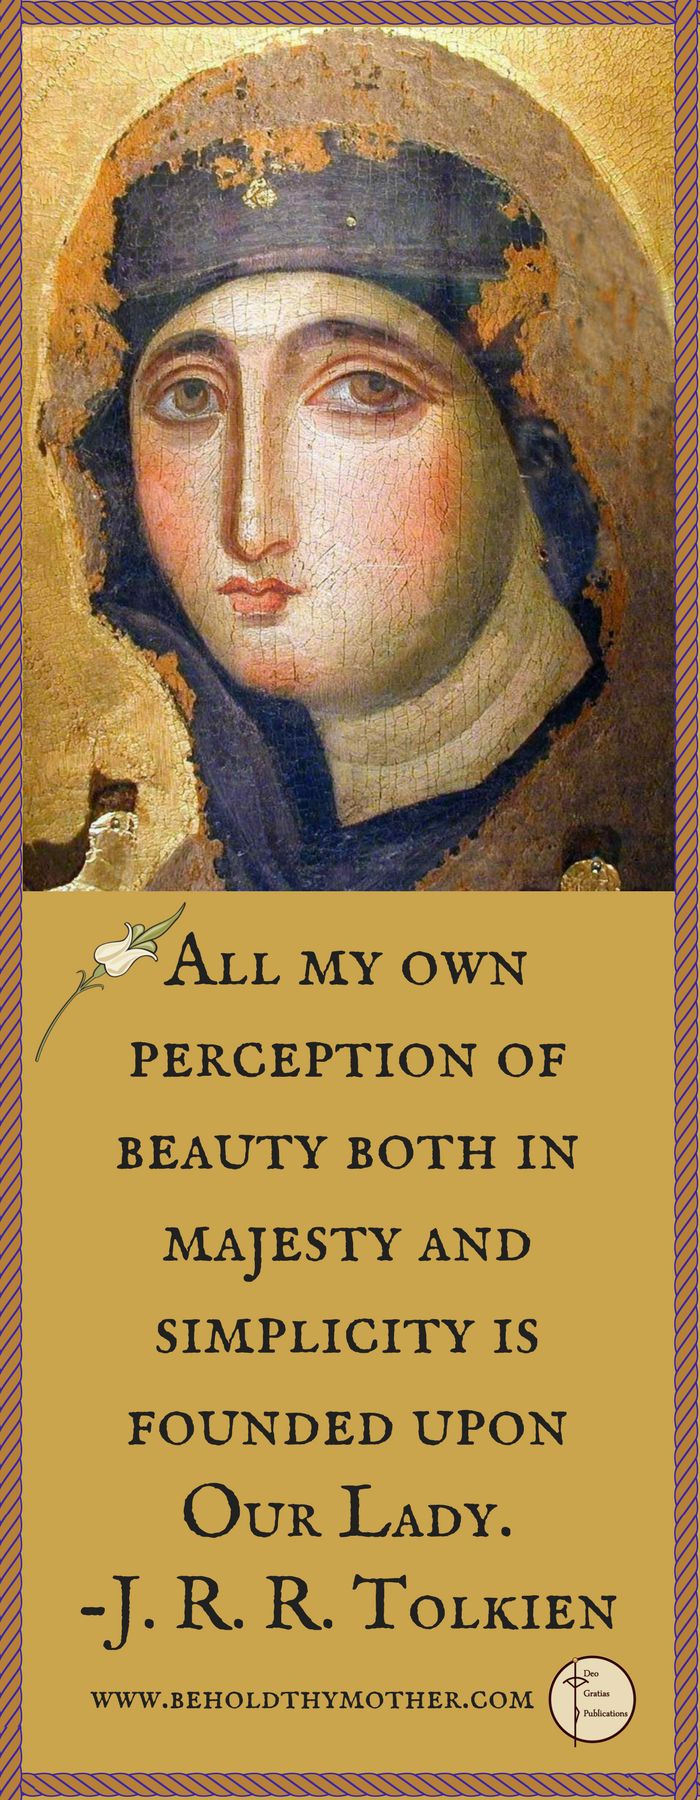 """J.R.R. Tolkien - """"All my perception of beauty...is founded upon Our Lady."""" www.beholdthymother.com"""